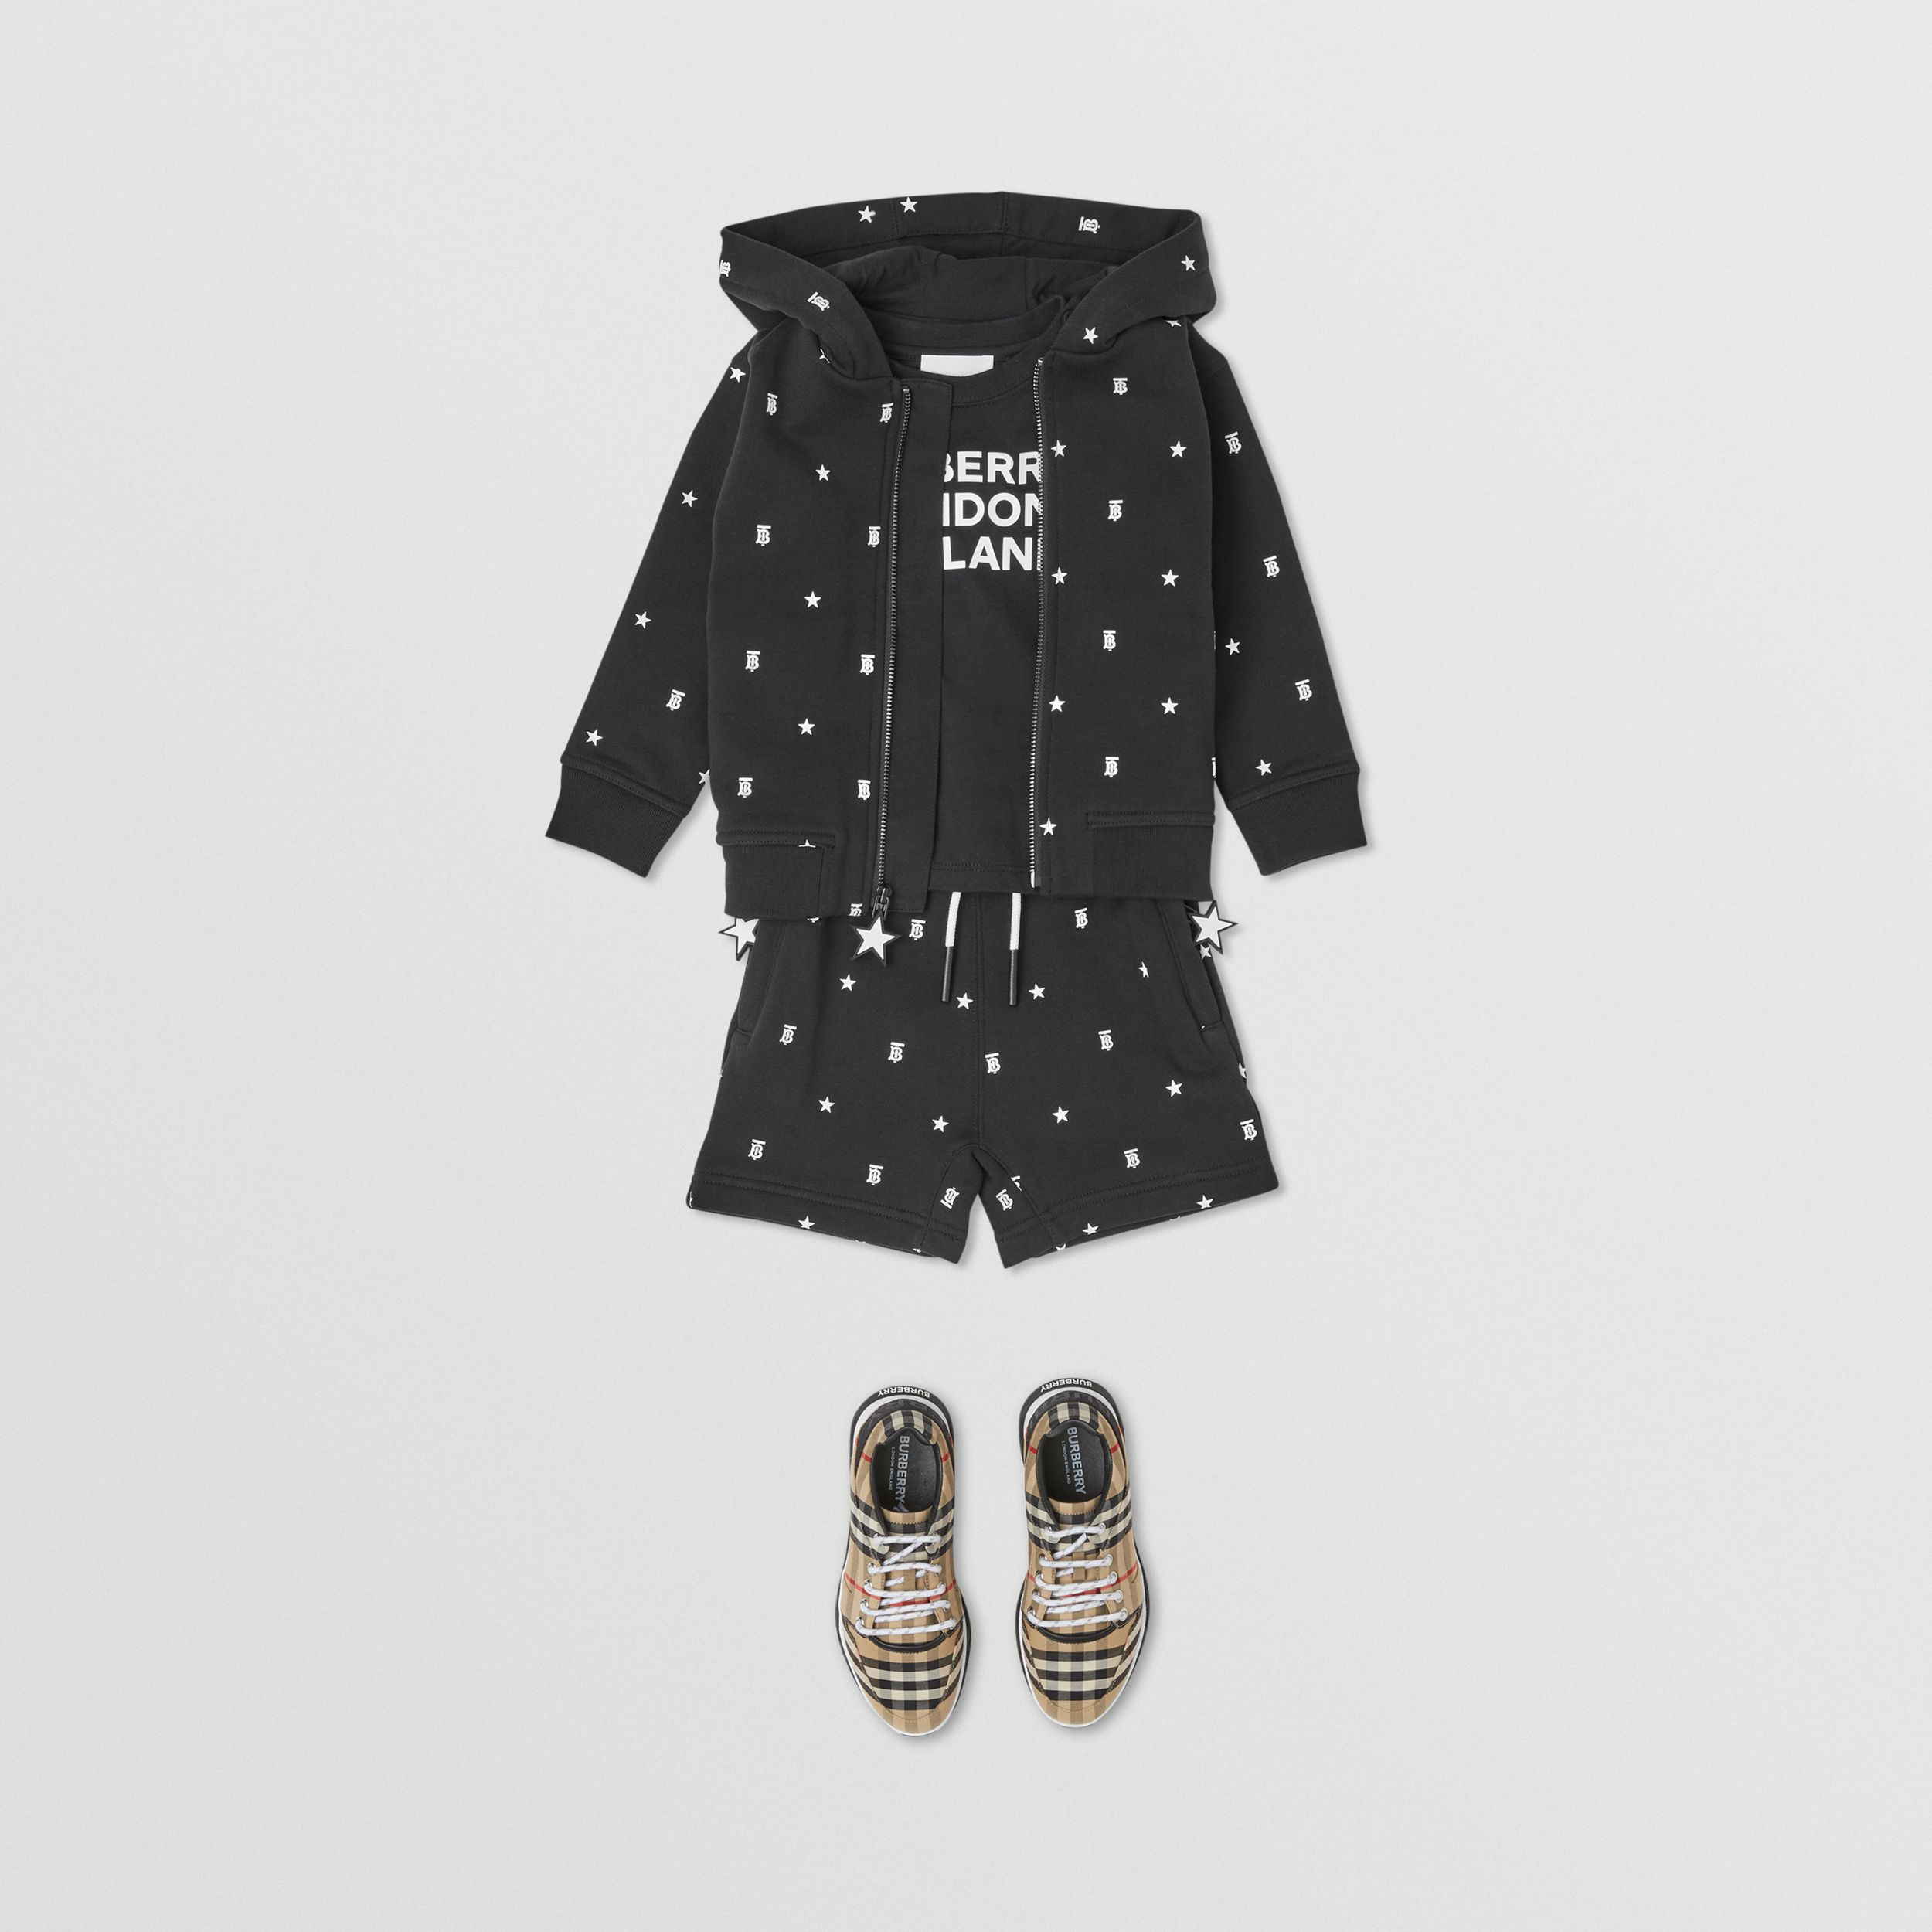 Star and Monogram Motif Cotton Shorts in Black - Children | Burberry United Kingdom - 4